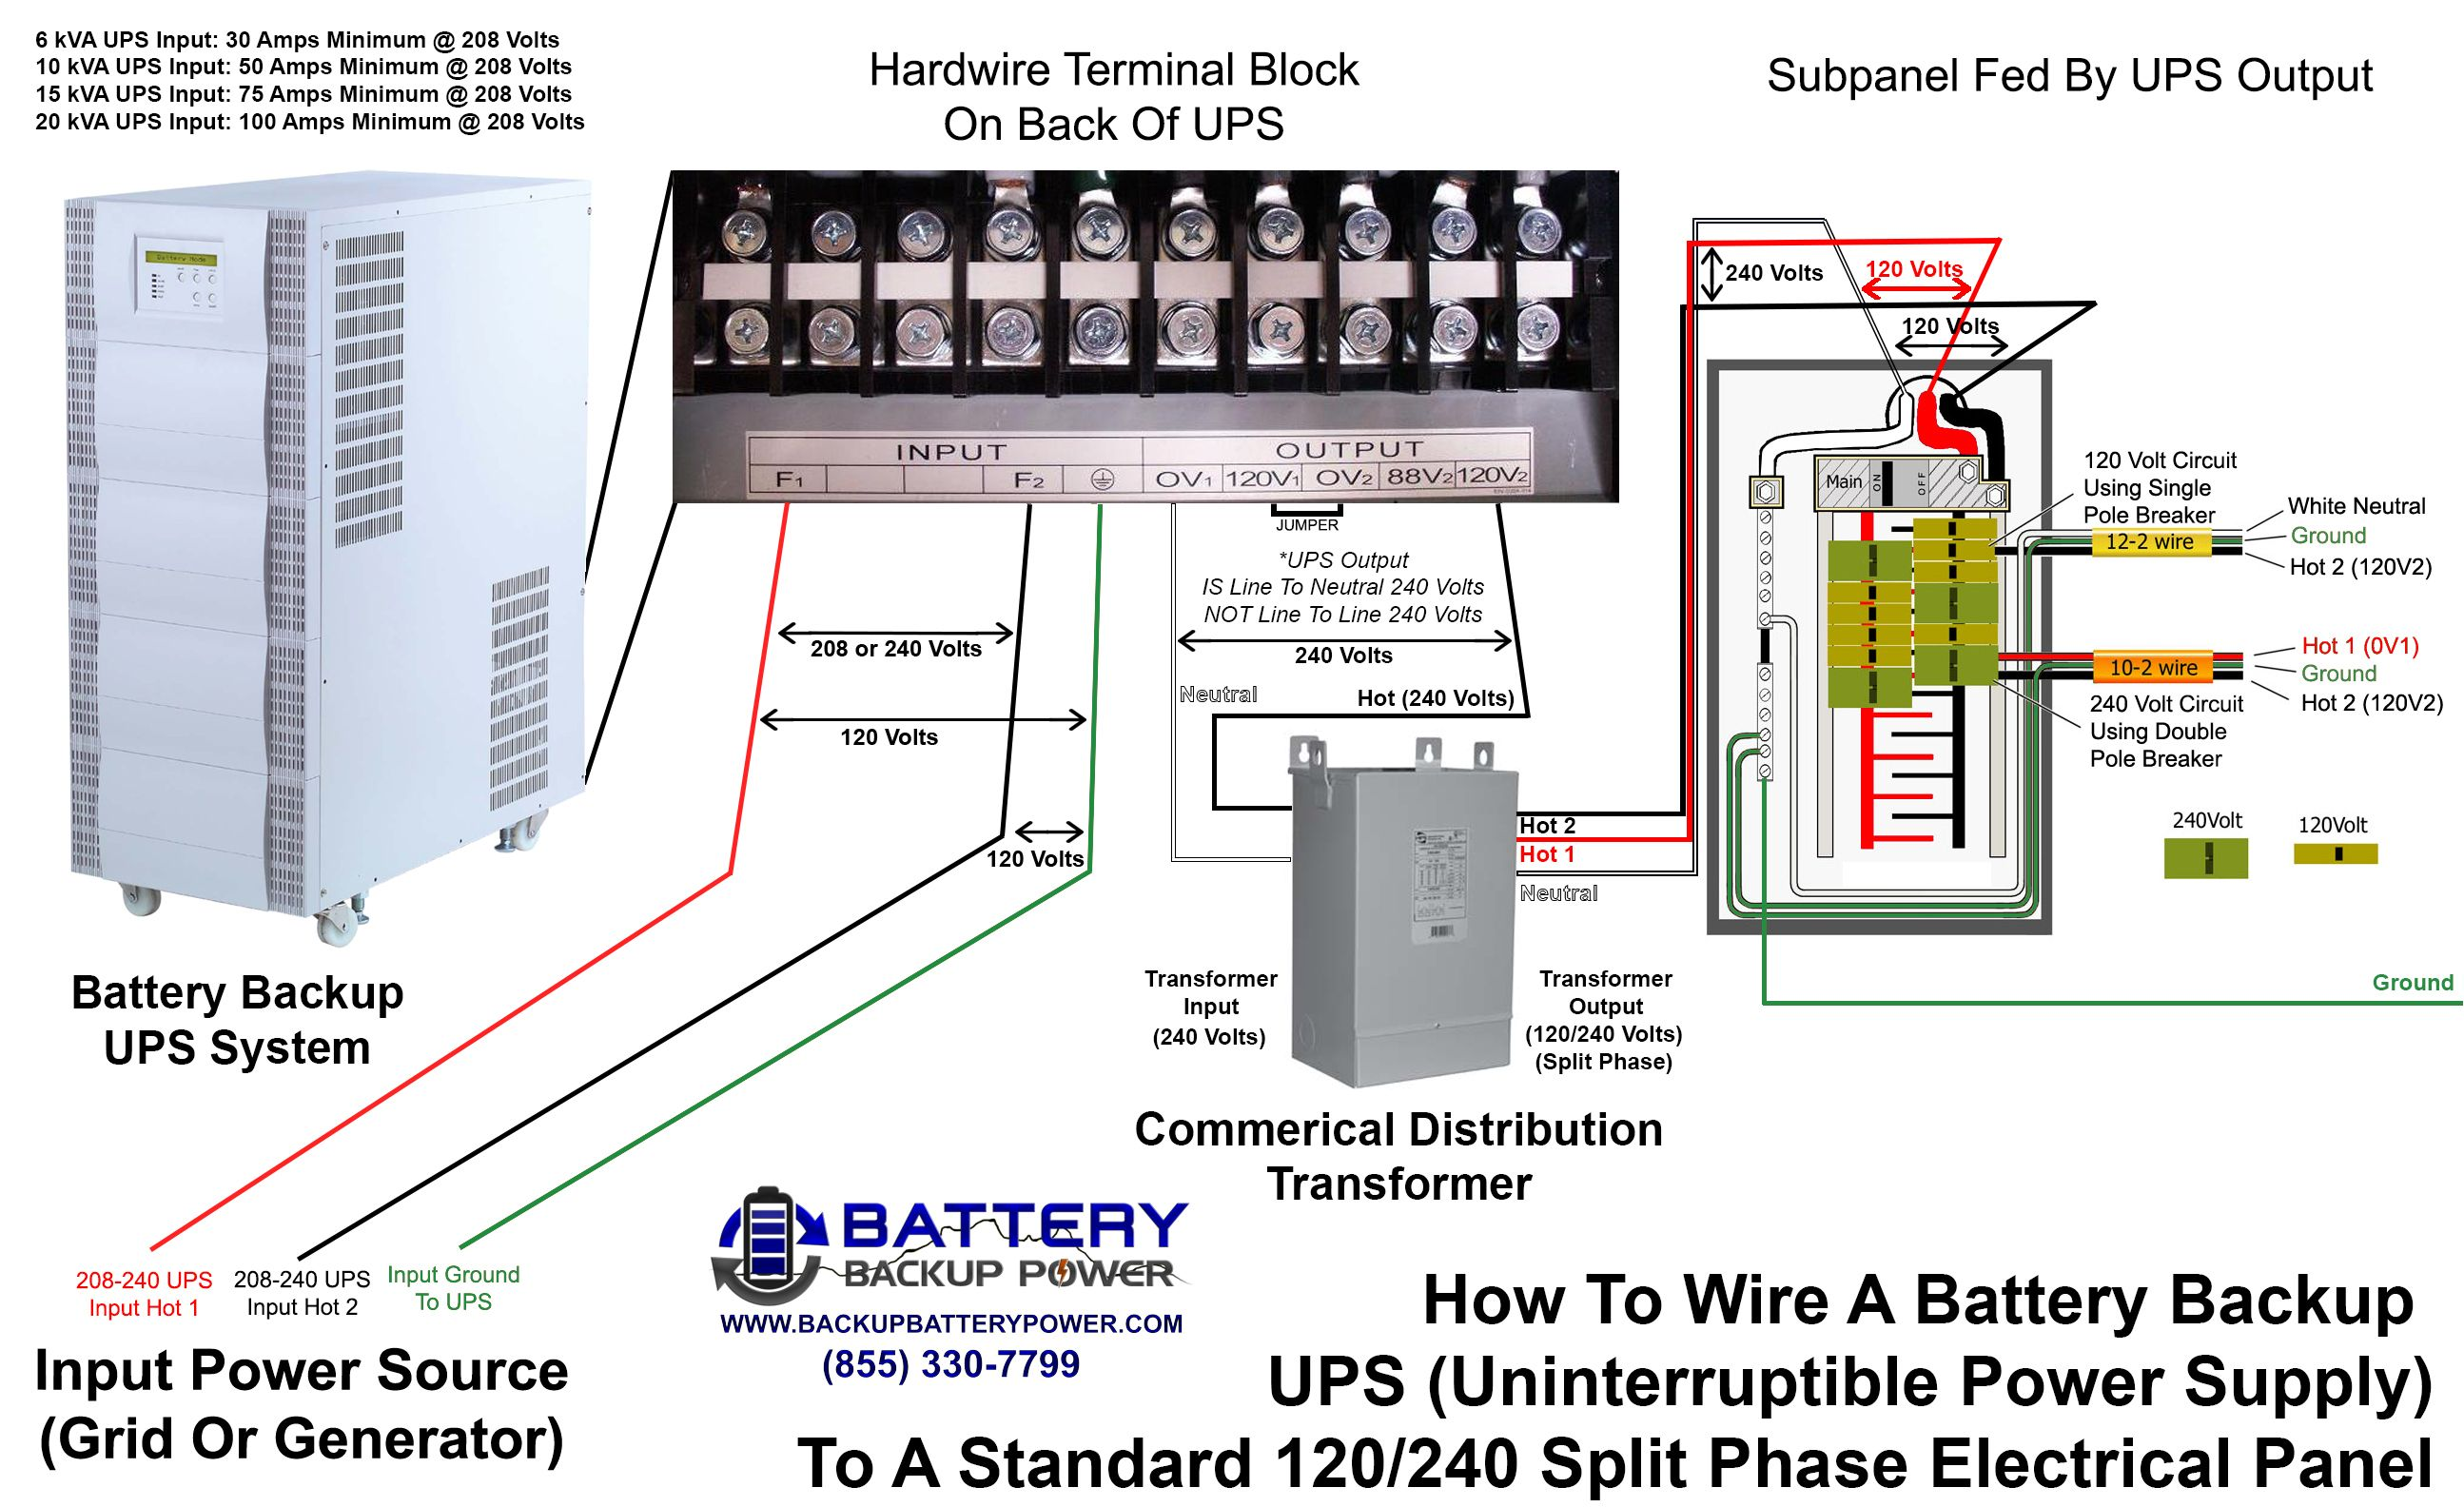 How To Wire A UPS To A Standard 120240 Split Phase